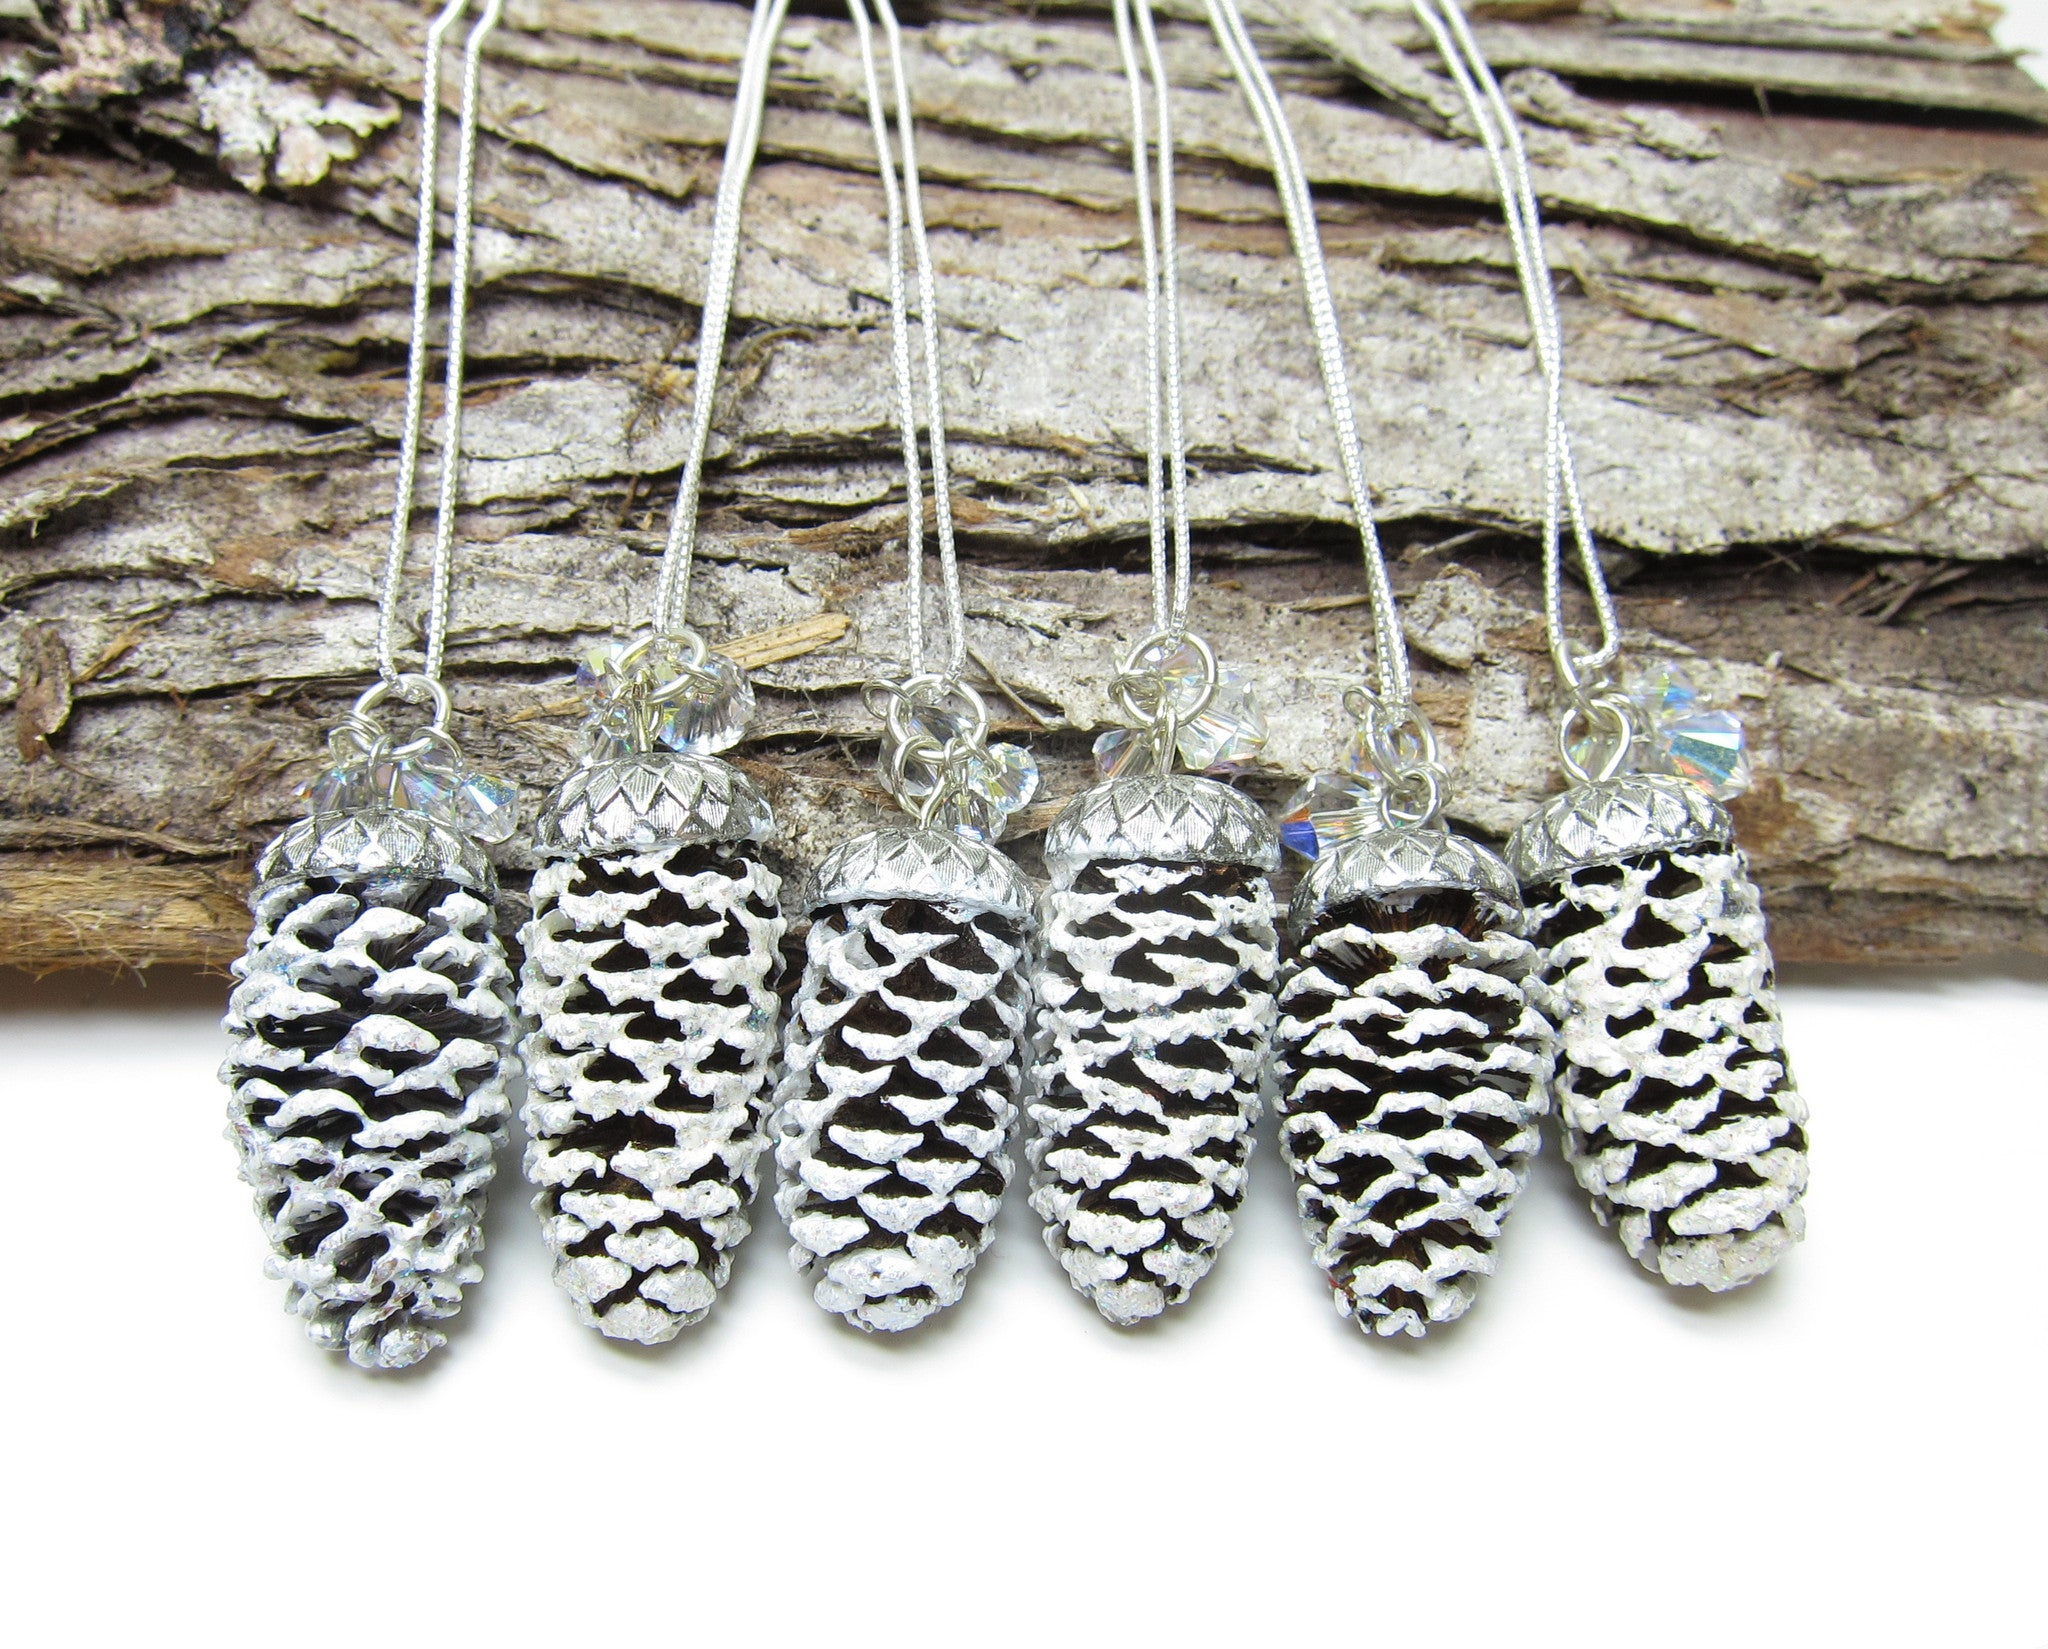 Pine Cone Bridesmaid Necklaces with White Snowy Pinecones